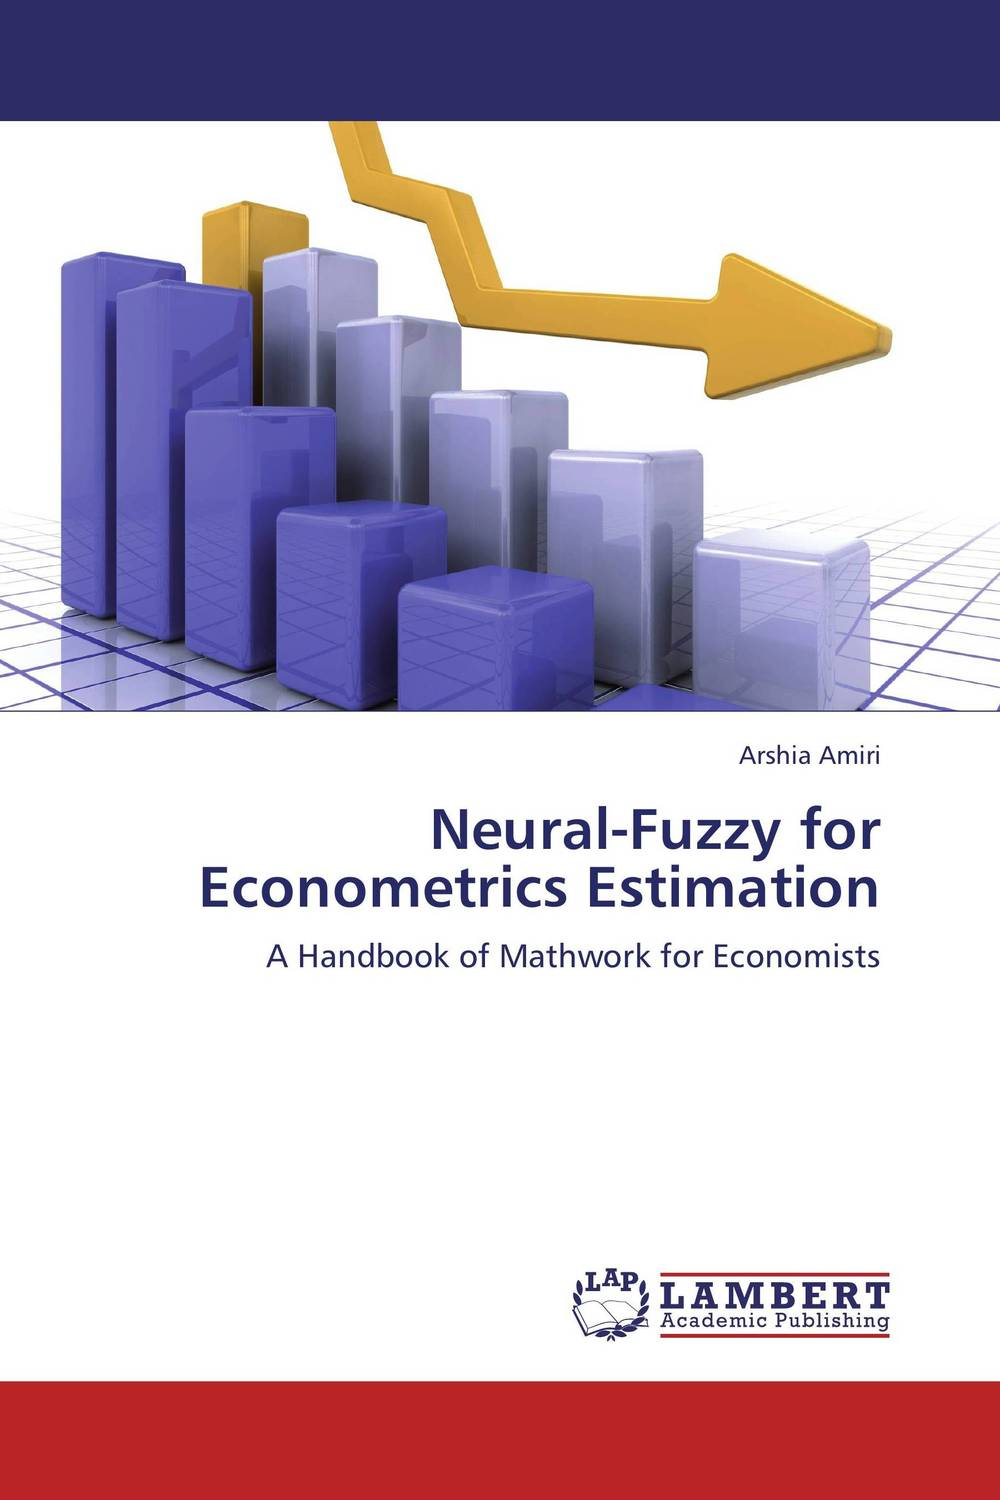 Neural-Fuzzy for Econometrics Estimation a novel software cost estimation techniques using fuzzy methods